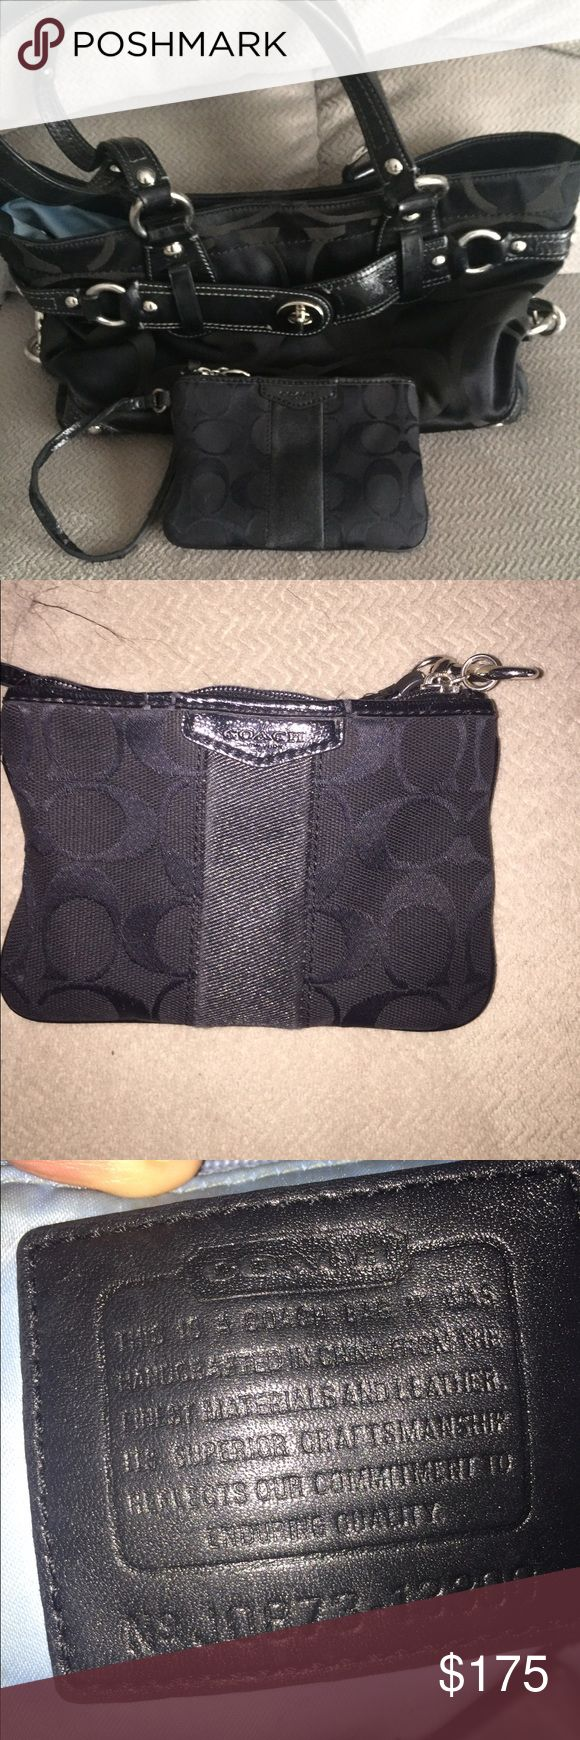 Matching coach clutch and change purse Matching coach clutch and change purse purse with normal wear use inside only Coach Bags Clutches & Wristlets